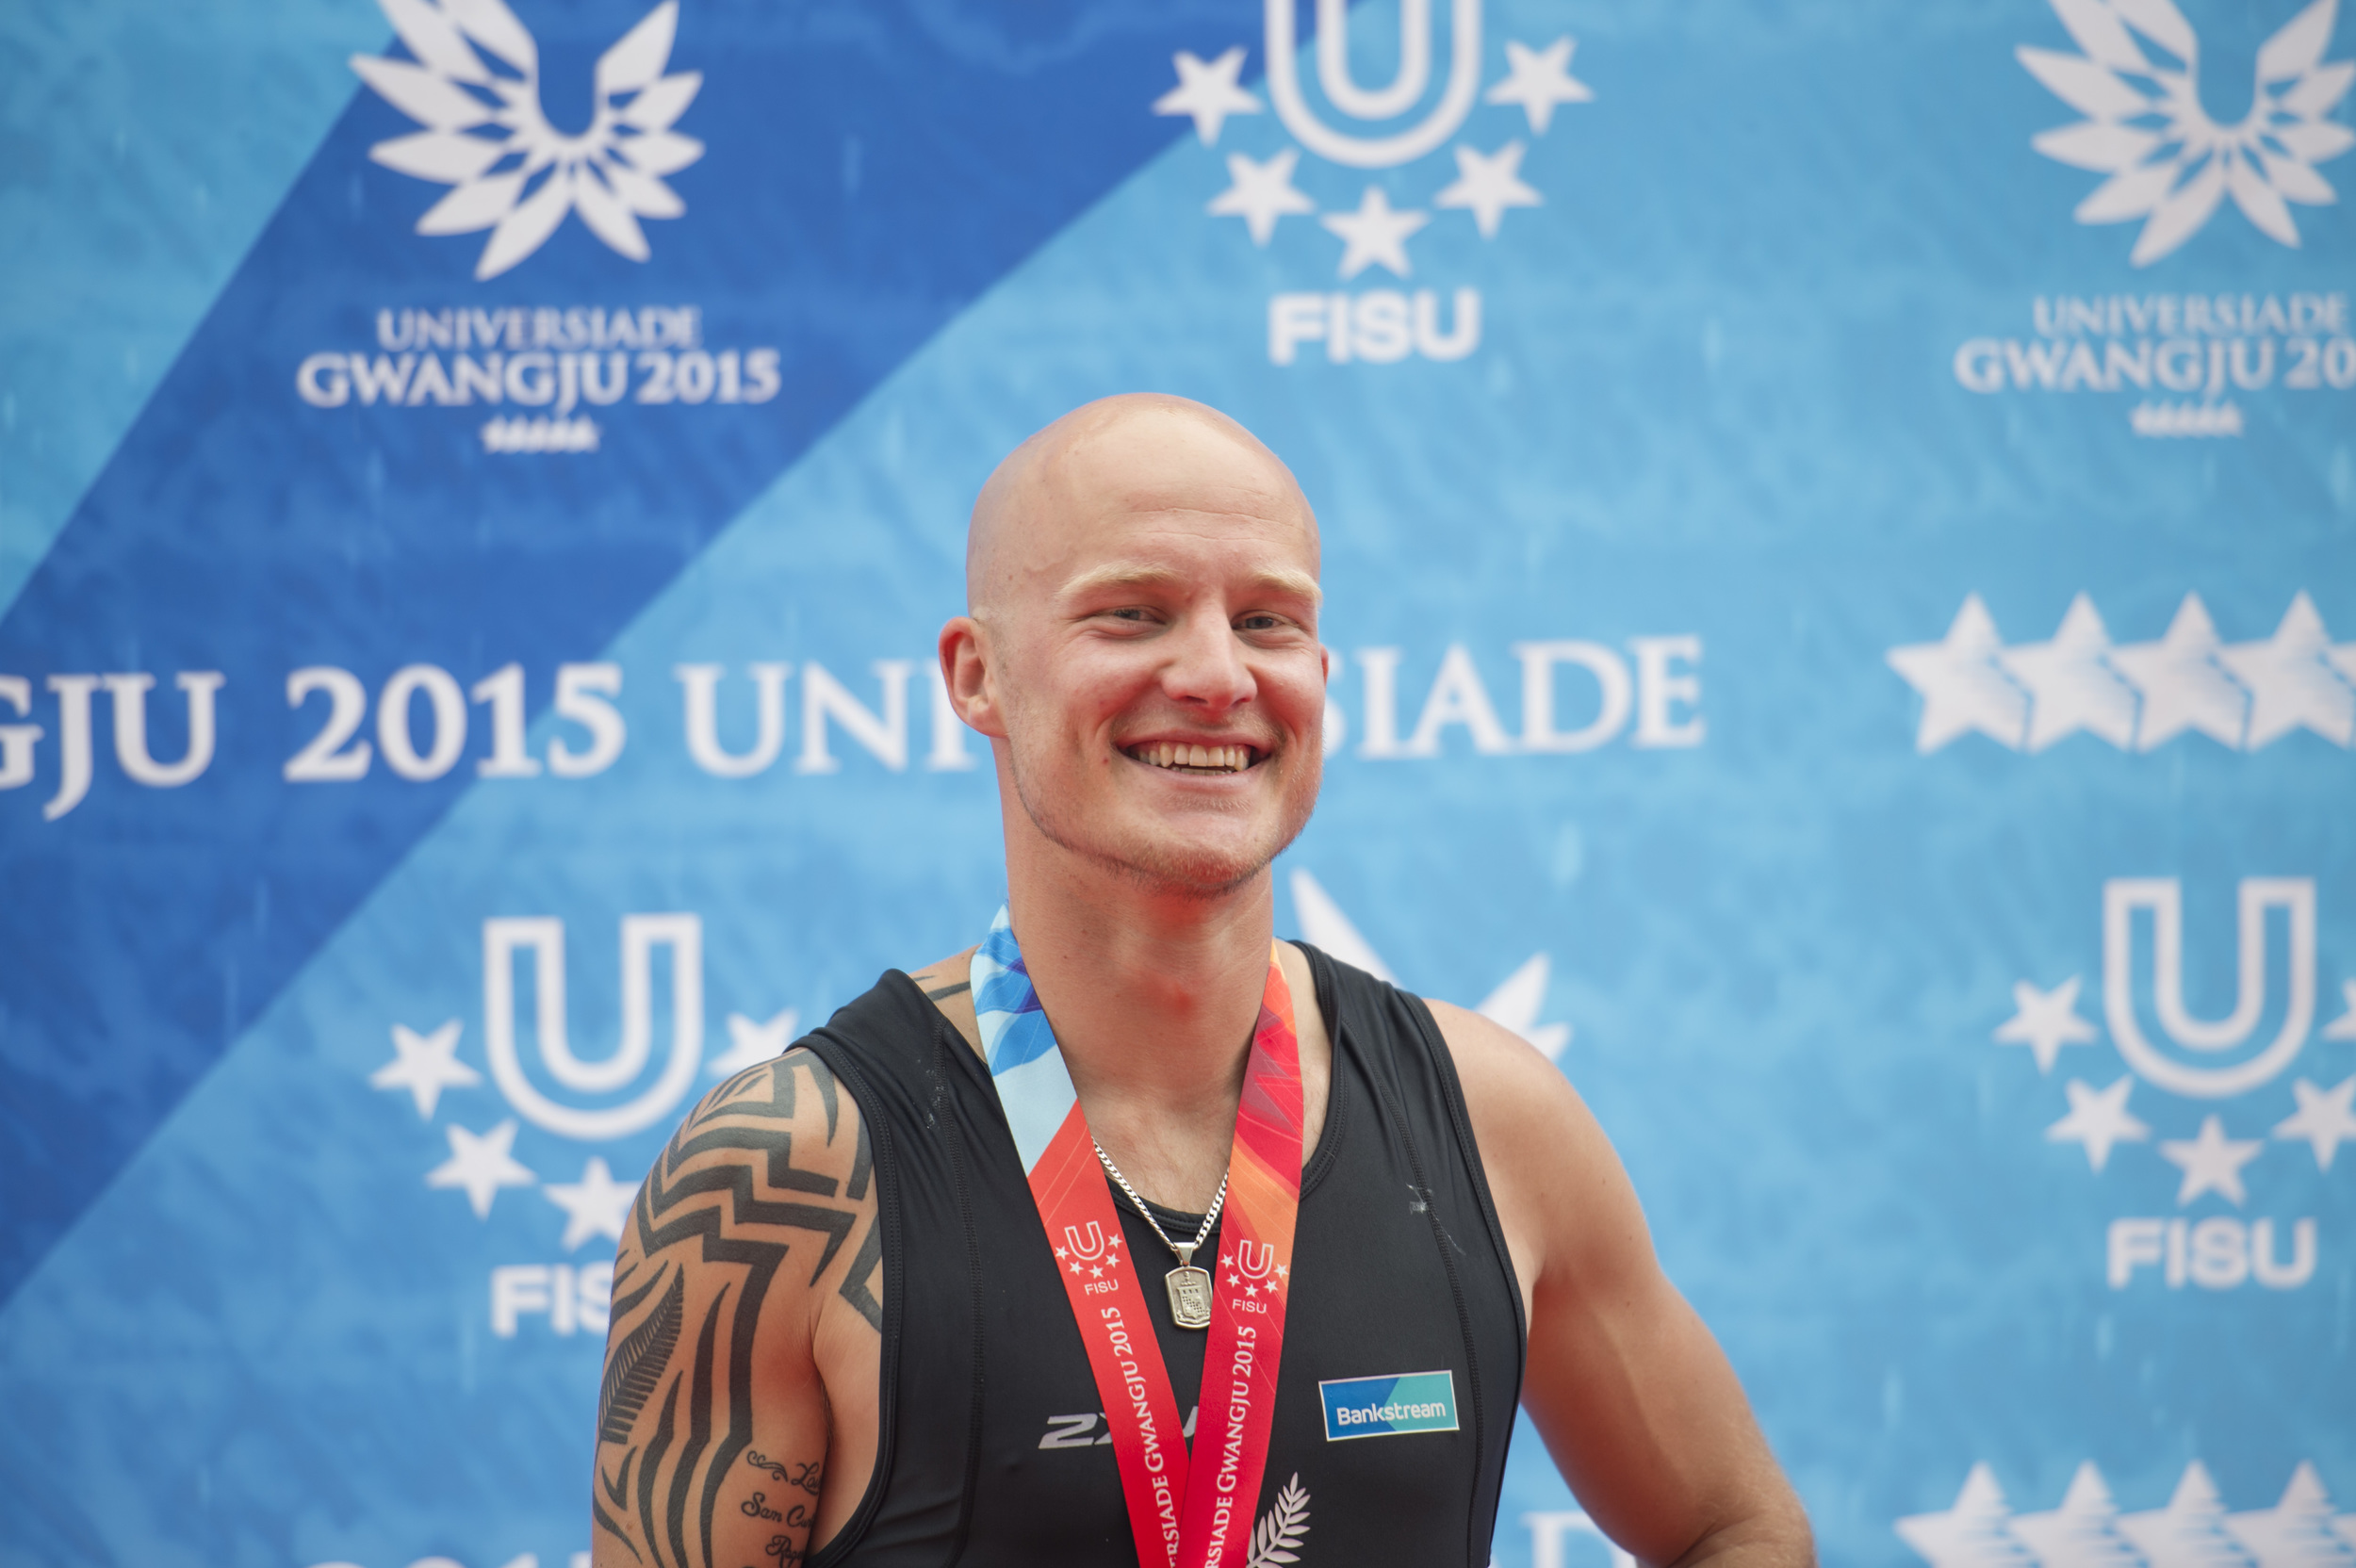 Toby Cunliffe-Steel - 2015 World University Games - A-Final - Photo © Rowing Celebration (16).jpg